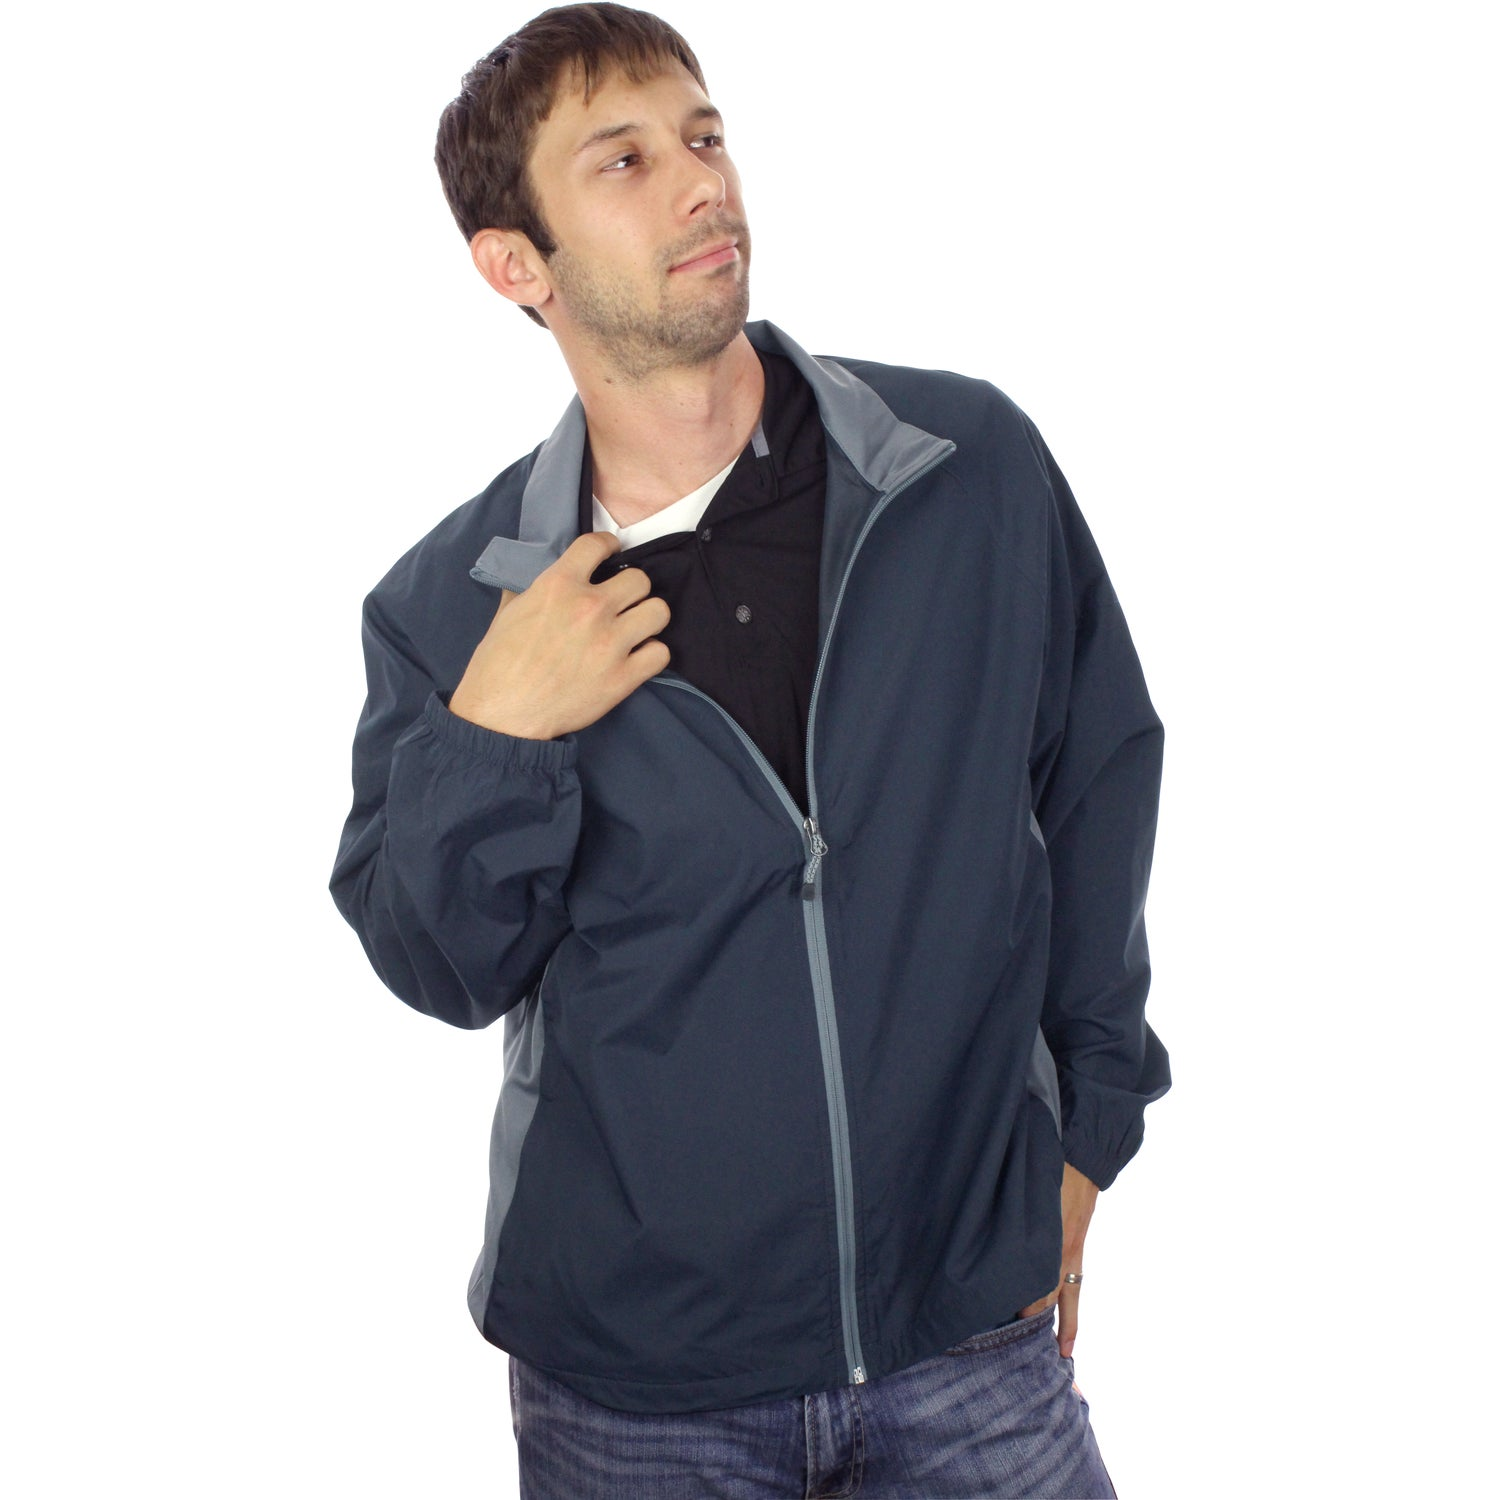 Promotional Grinnell Lightweight Jacket by TRIMARKs with Custom